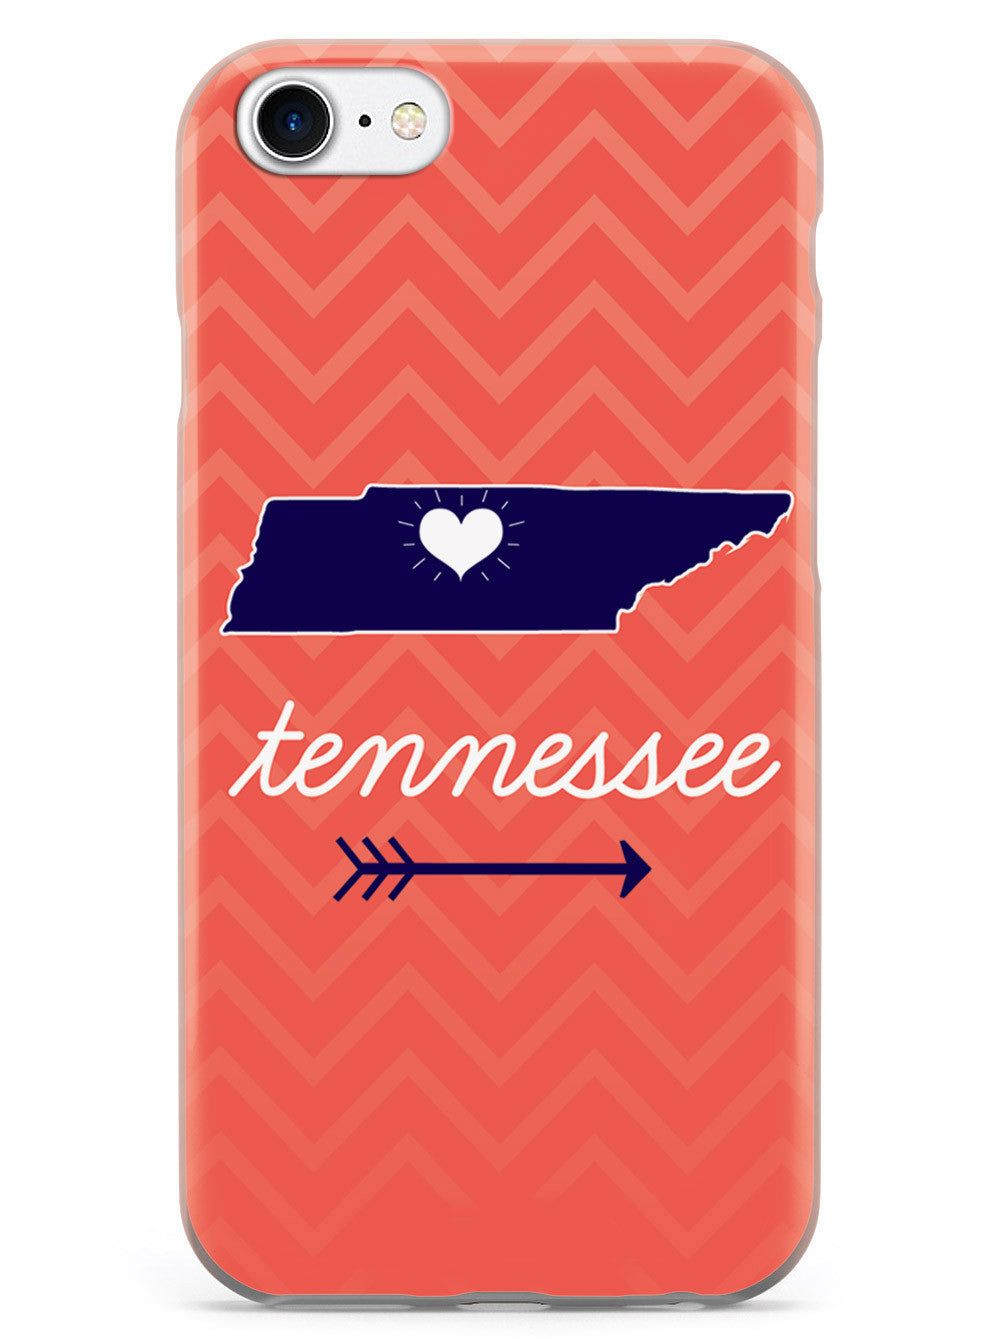 Tennessee Chevron Pattern State Case